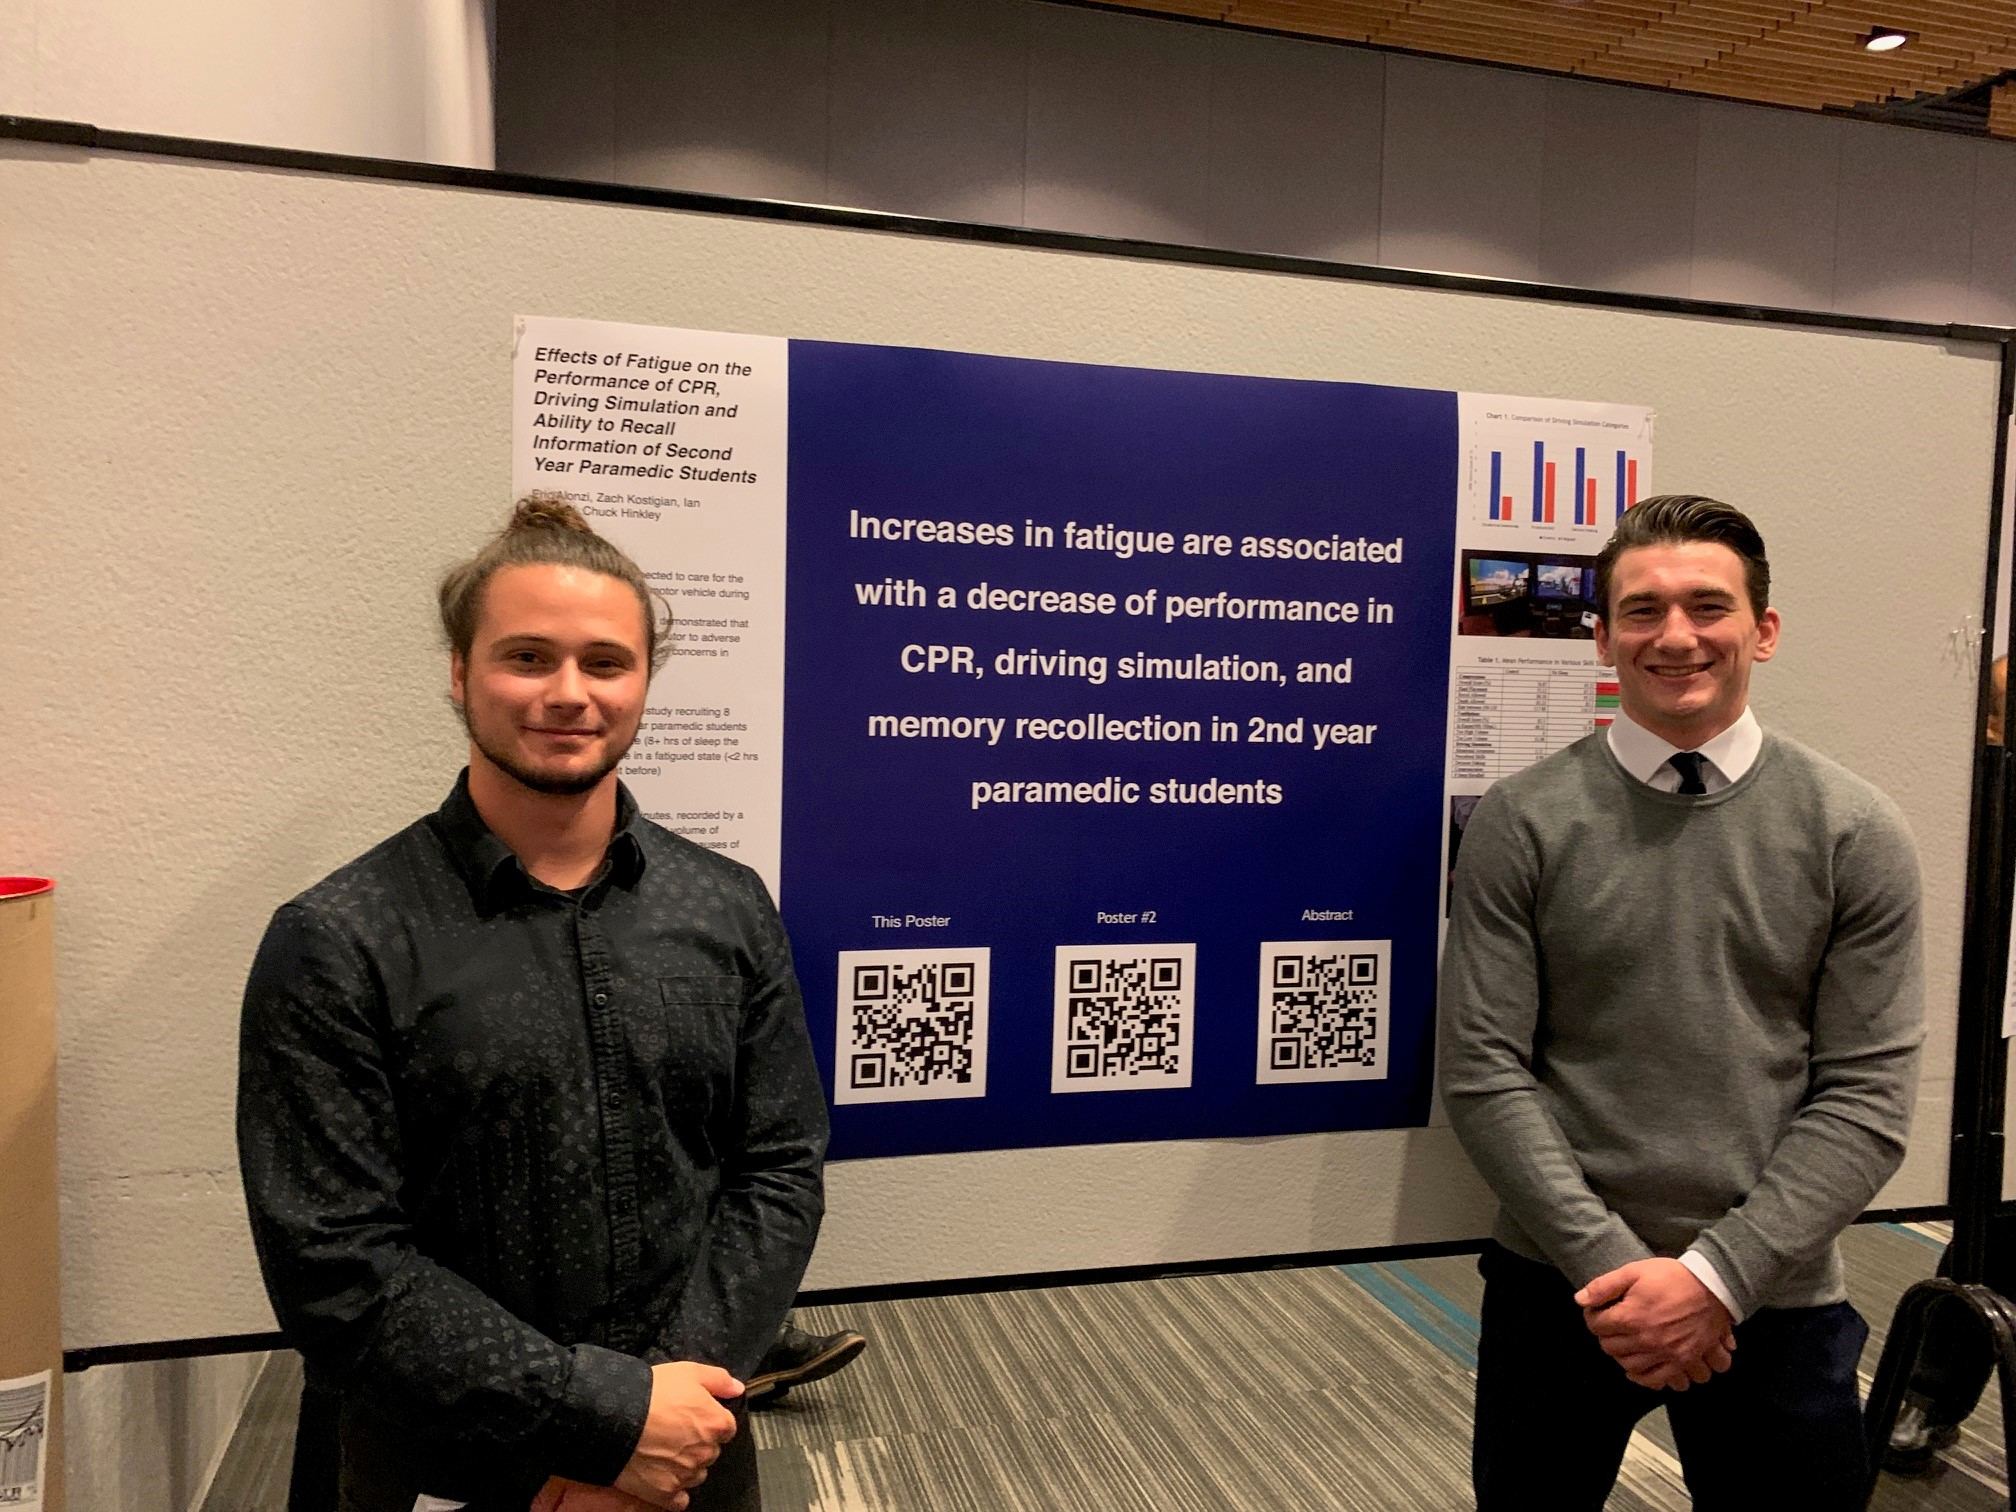 Paramedic research at Georgian well represented at Canada's largest paramedic conference